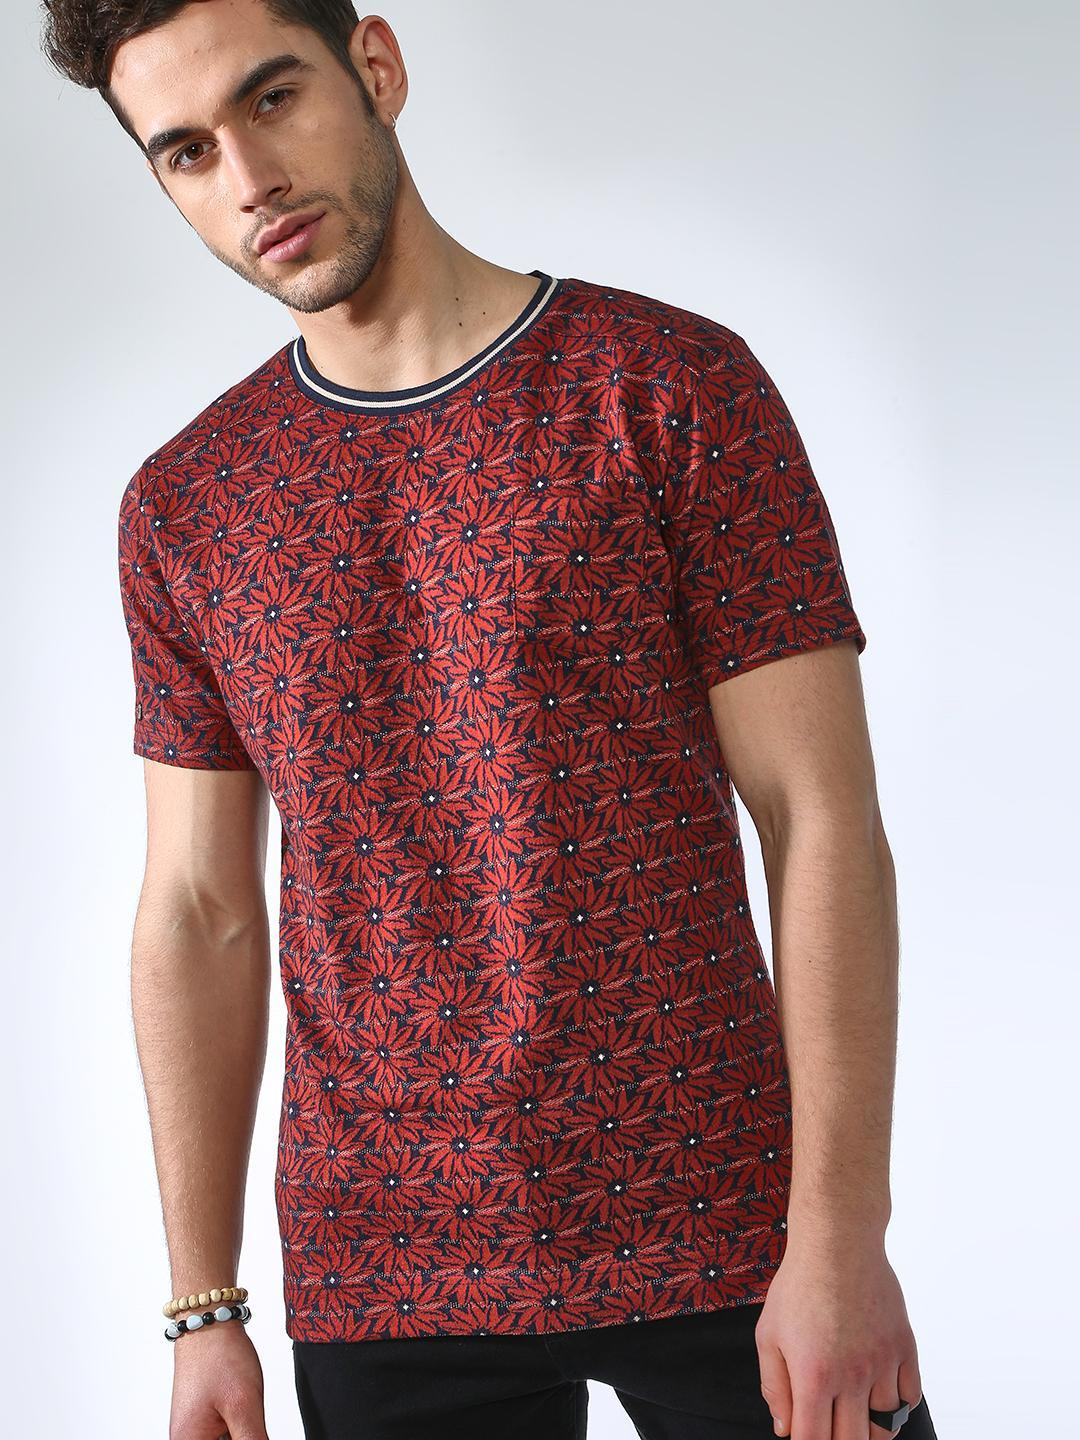 SMUGGLERZ Inc. Red Floral Print Crew Neck T-shirt 1